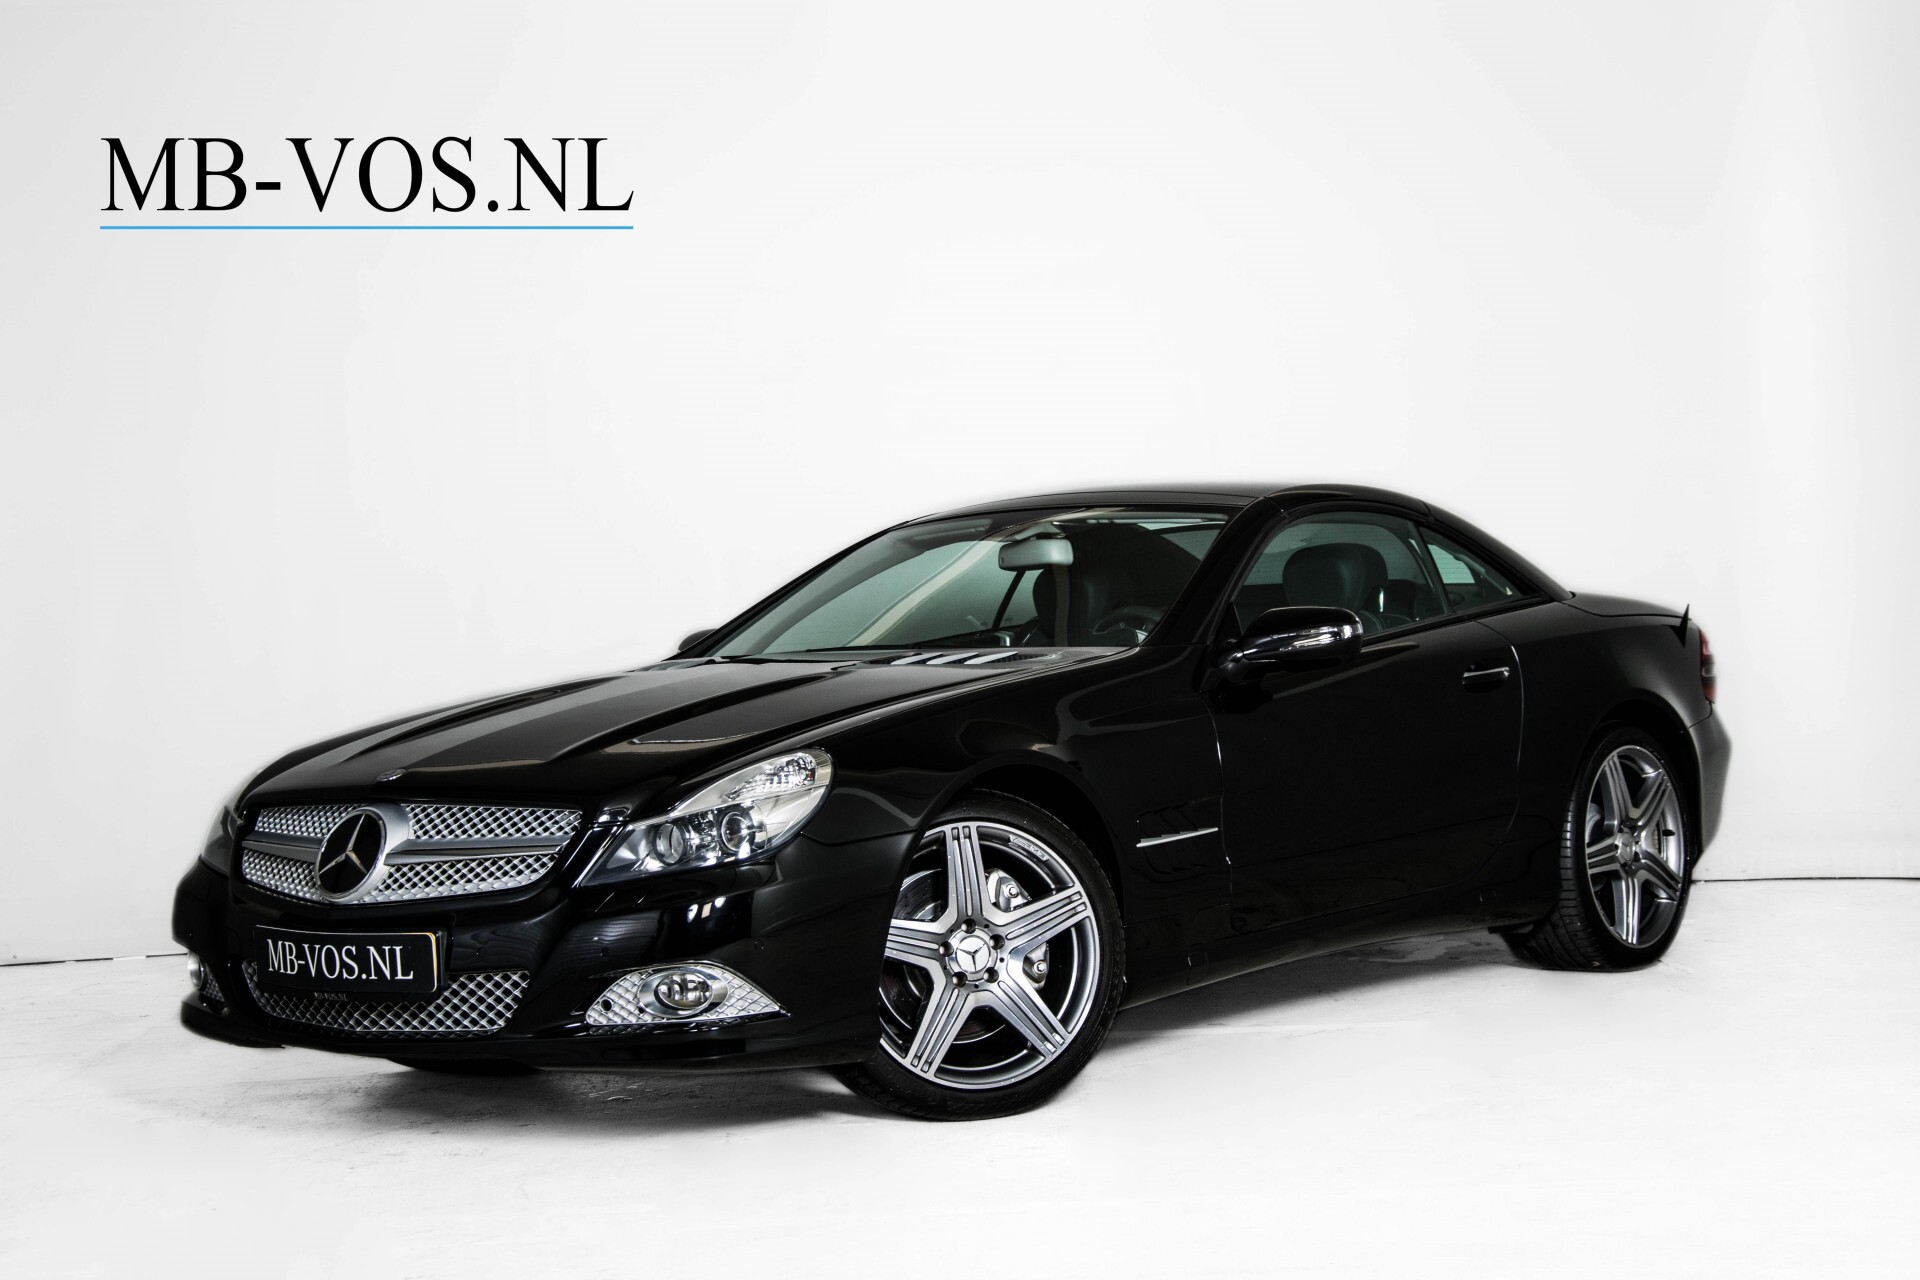 Mercedes-Benz SL-Klasse 500 Sport ABC/Harman-Kardon/Comand/Distronic Aut7 NP €175292 Foto 2